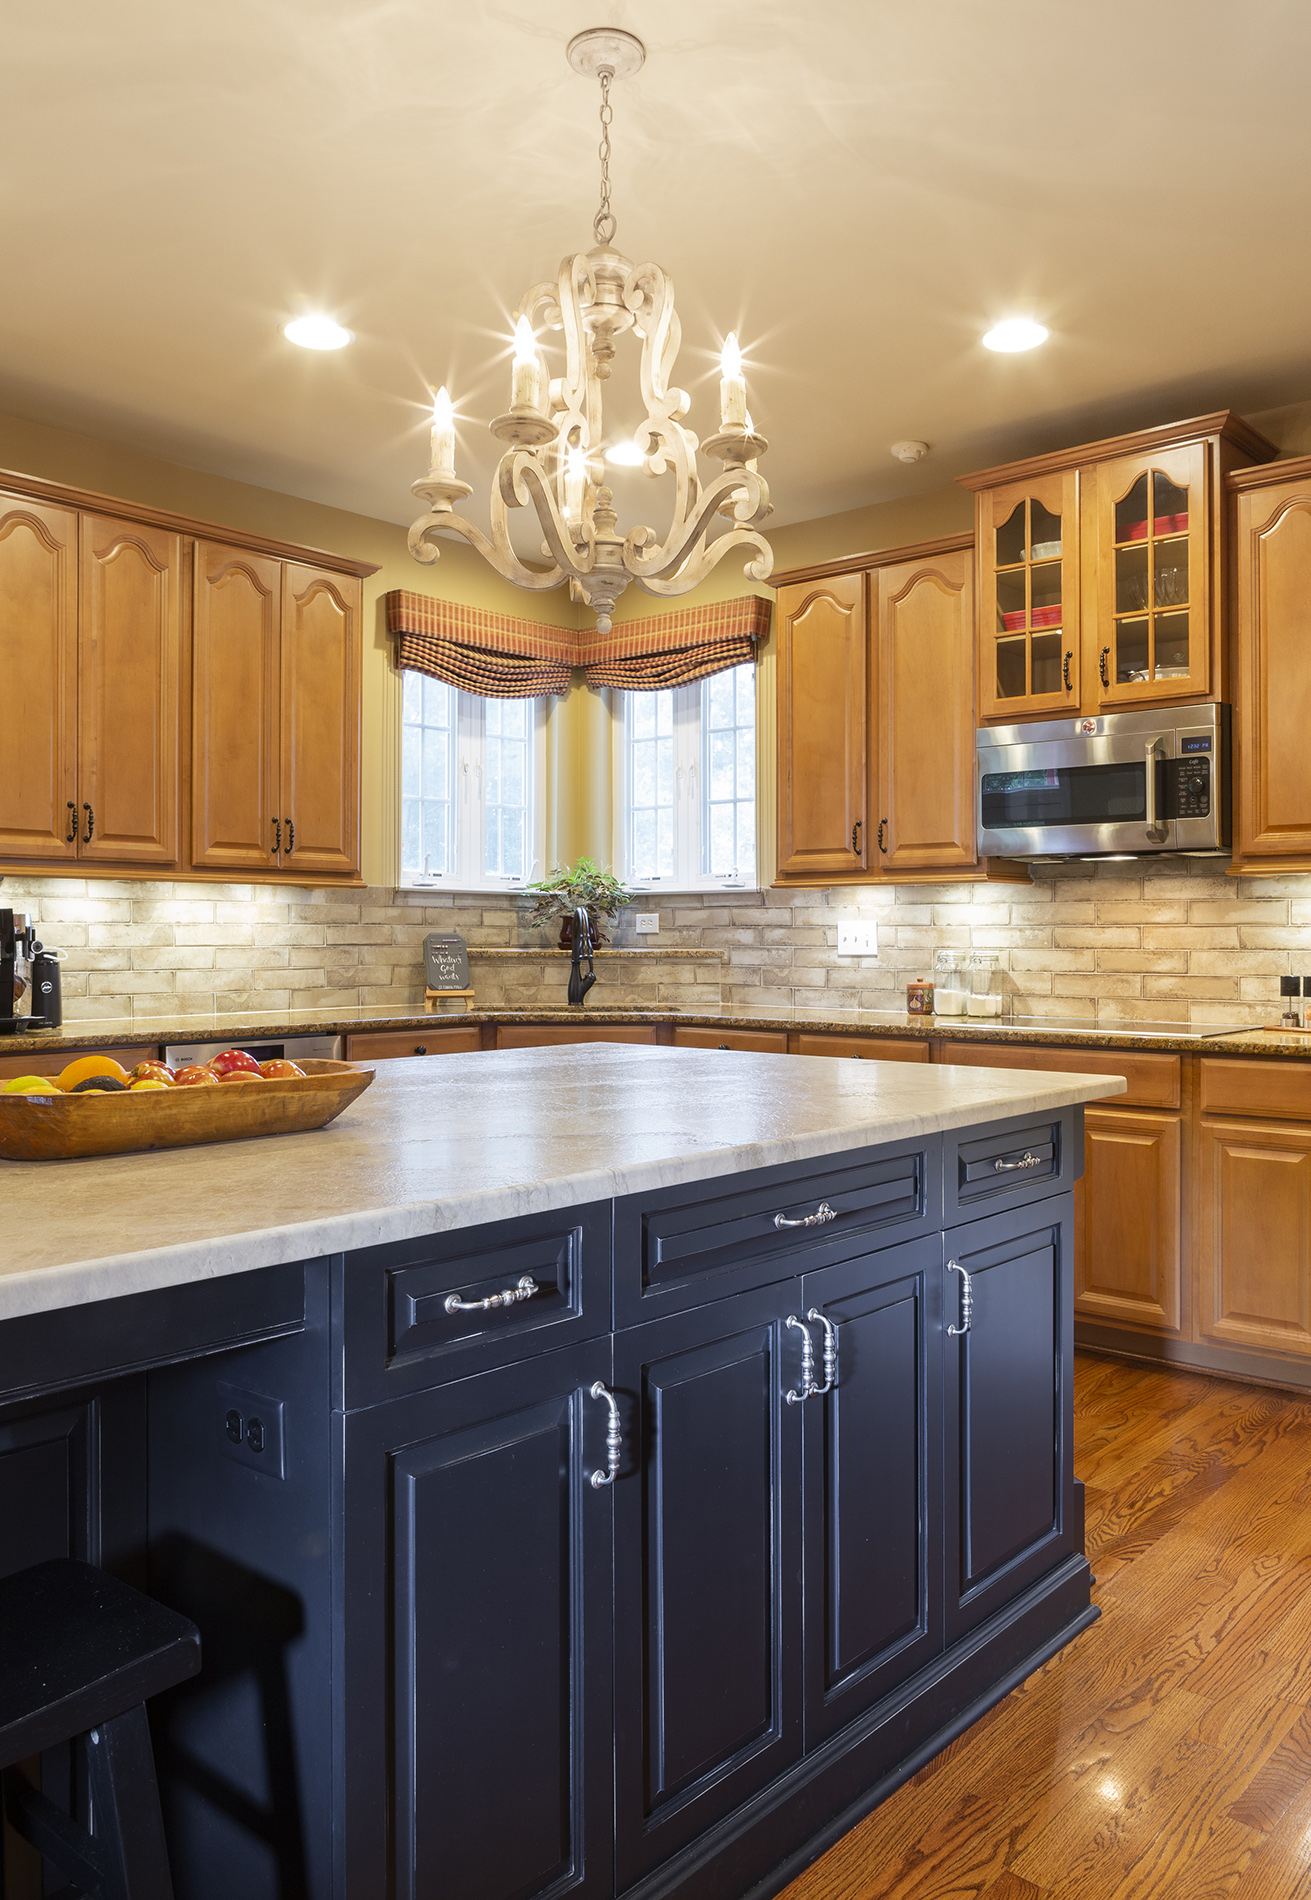 Home Upgrades: What to do Now vs. Later